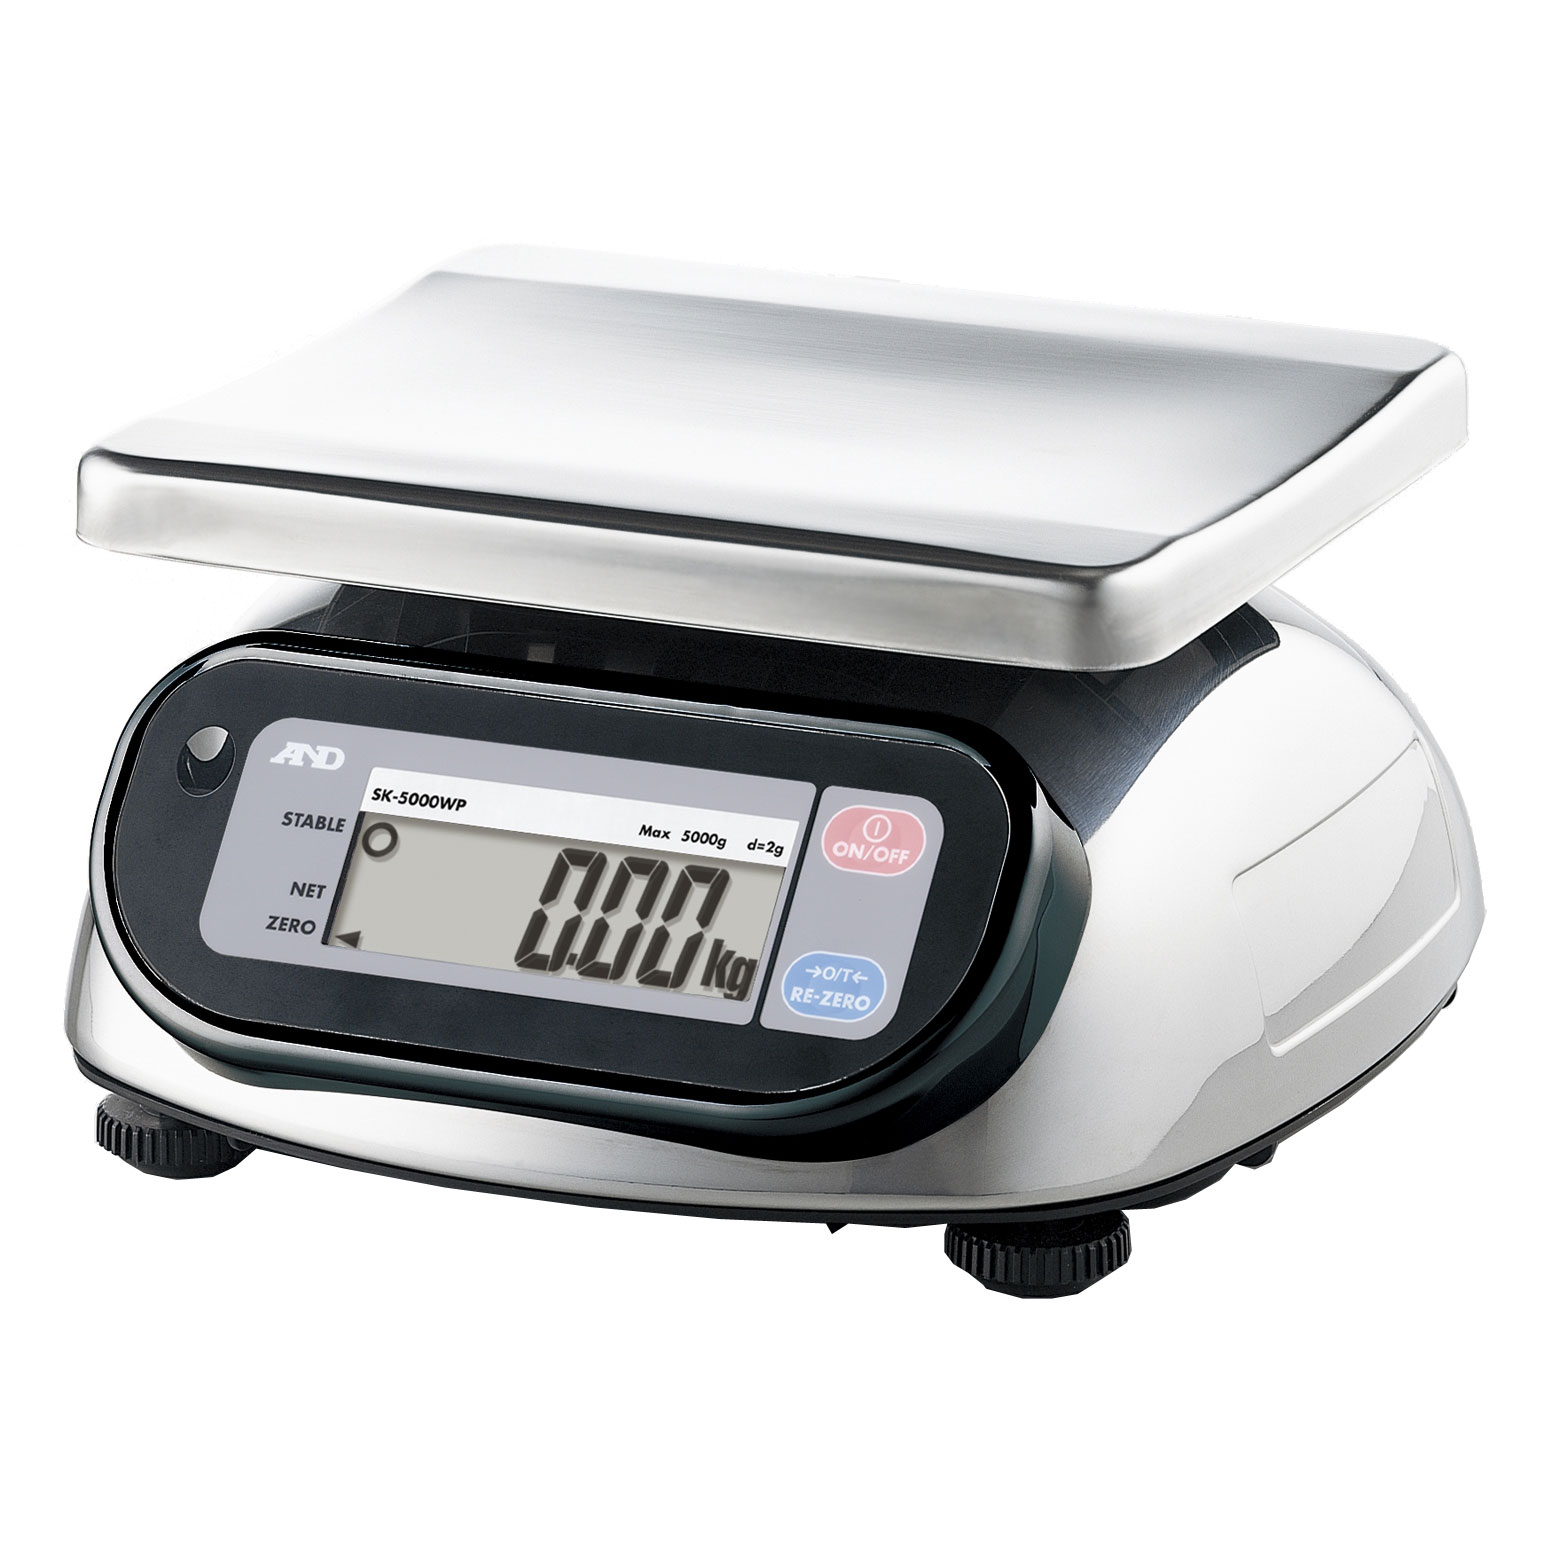 SK-WP Series Stainless Steel Bench Scales IP65 Waterproof